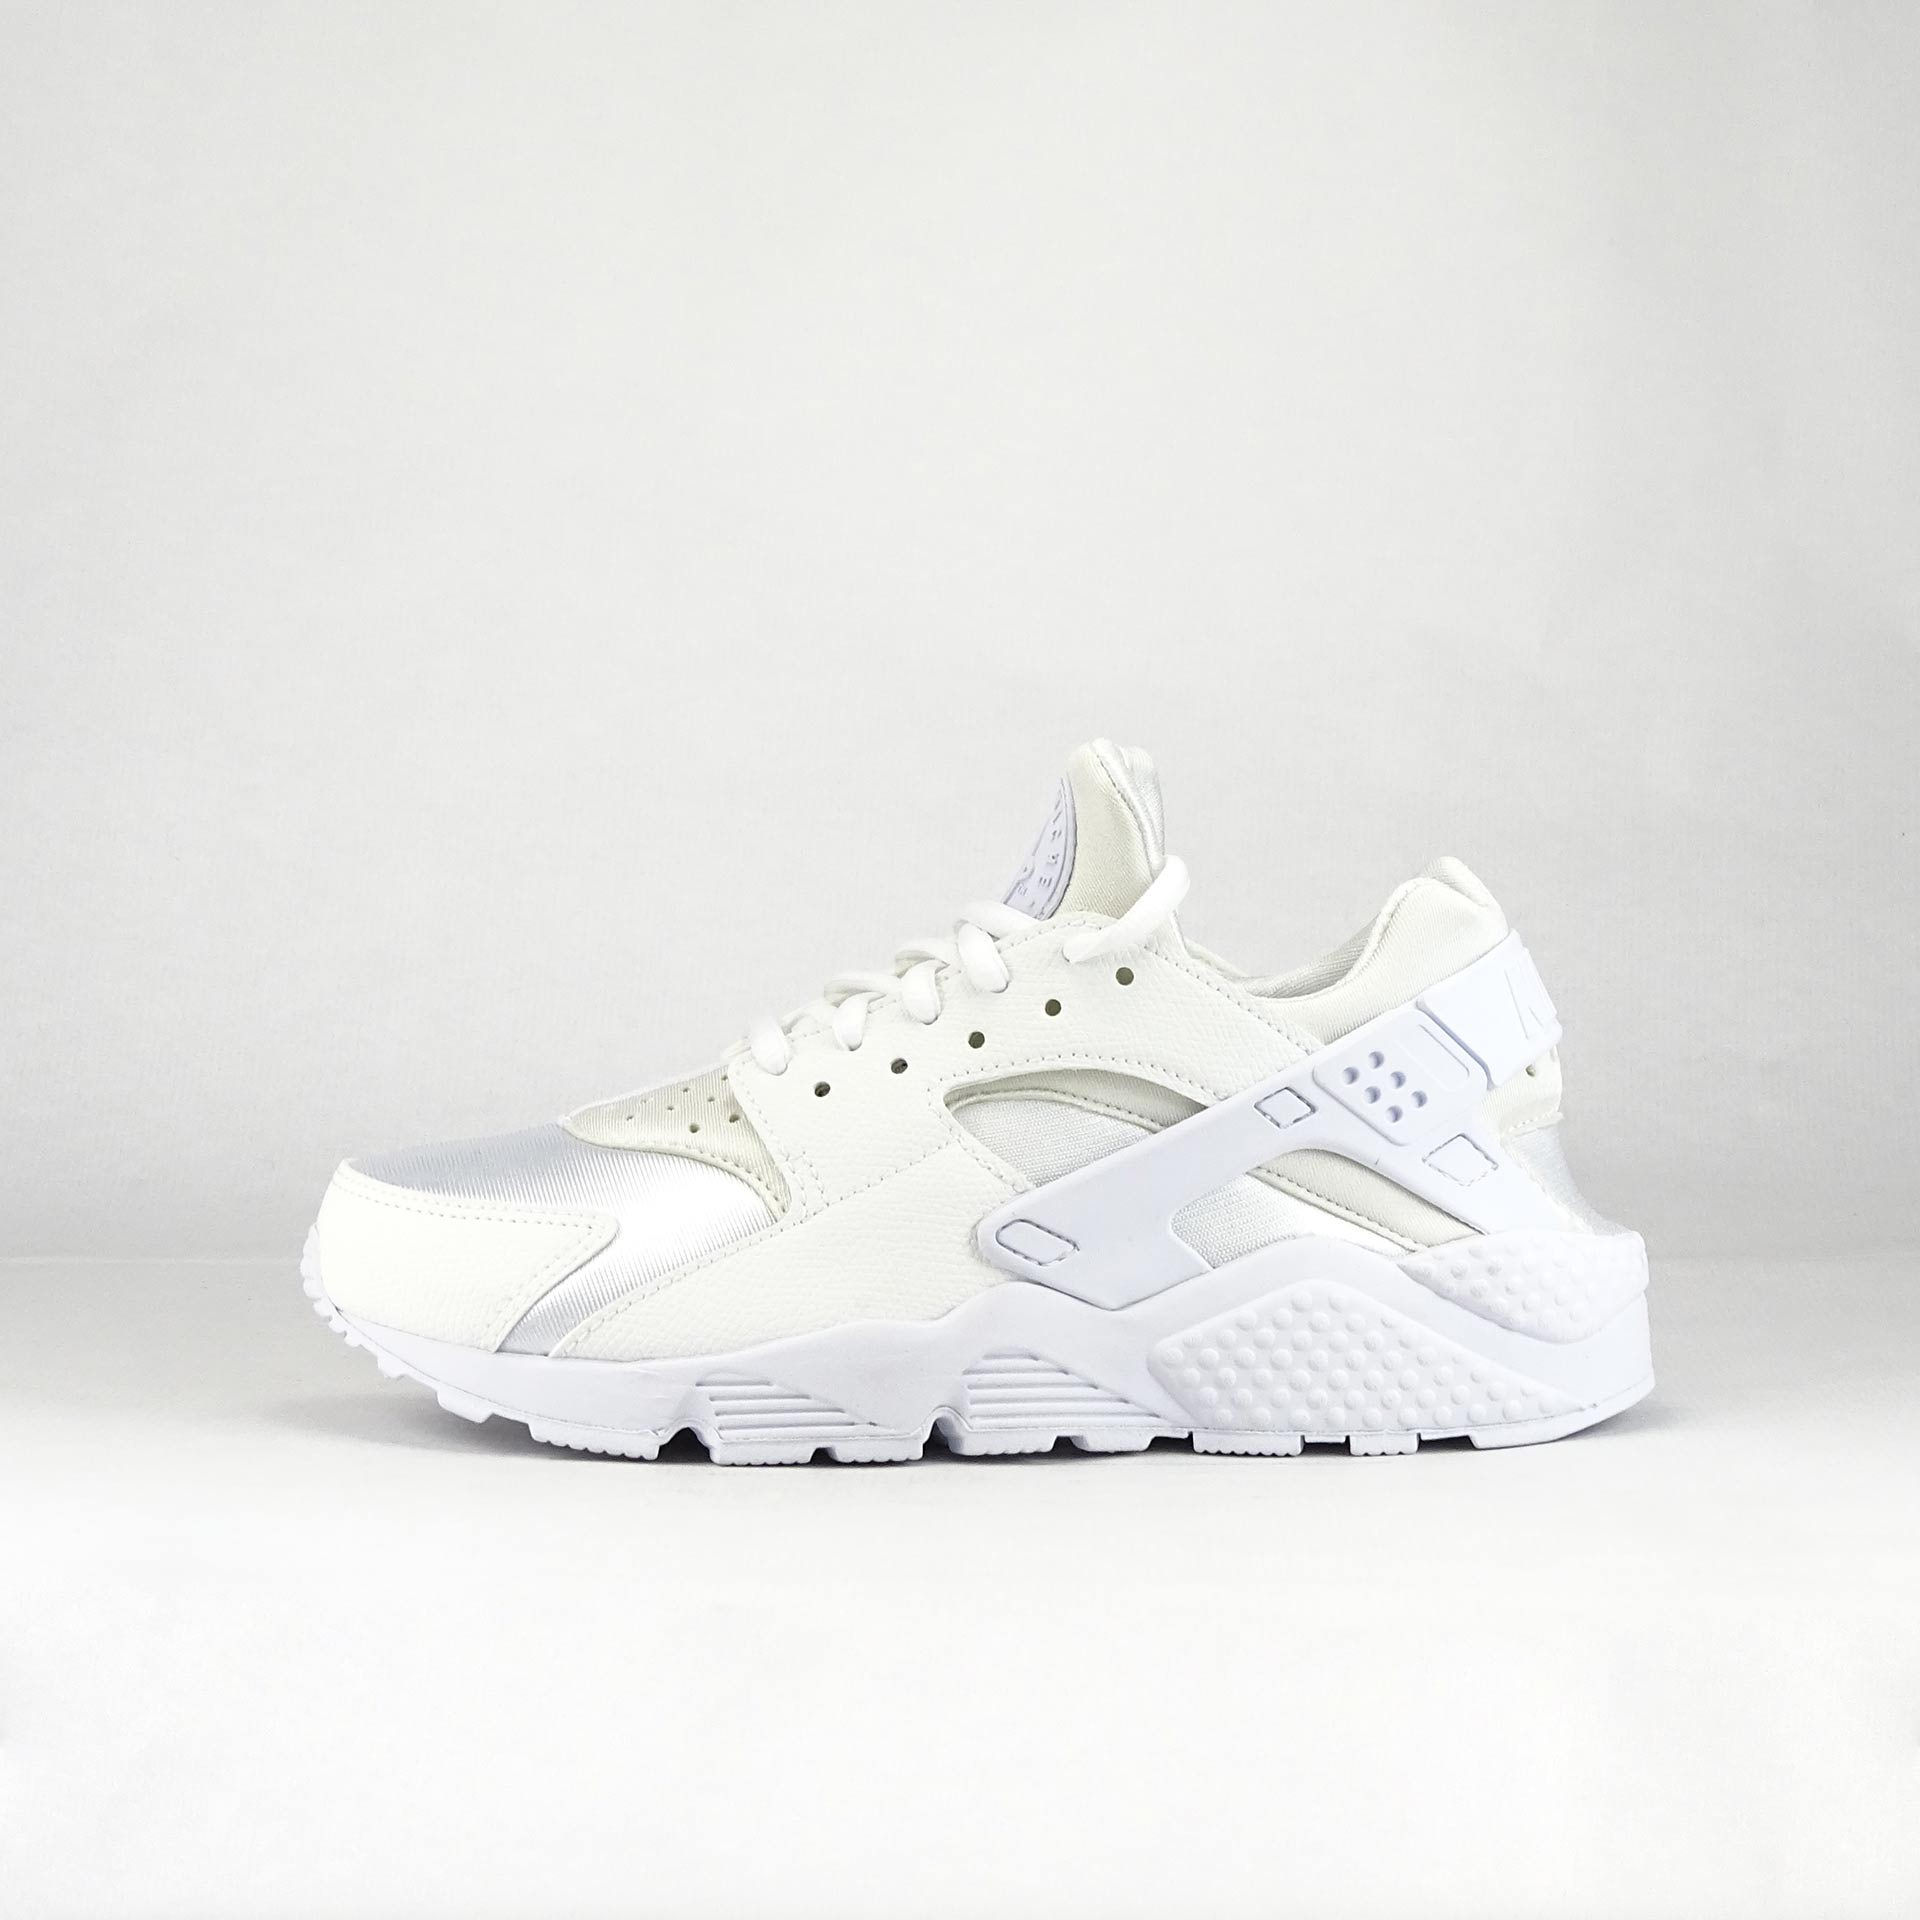 WMNS AIR HUARACHE RUN BL, 5